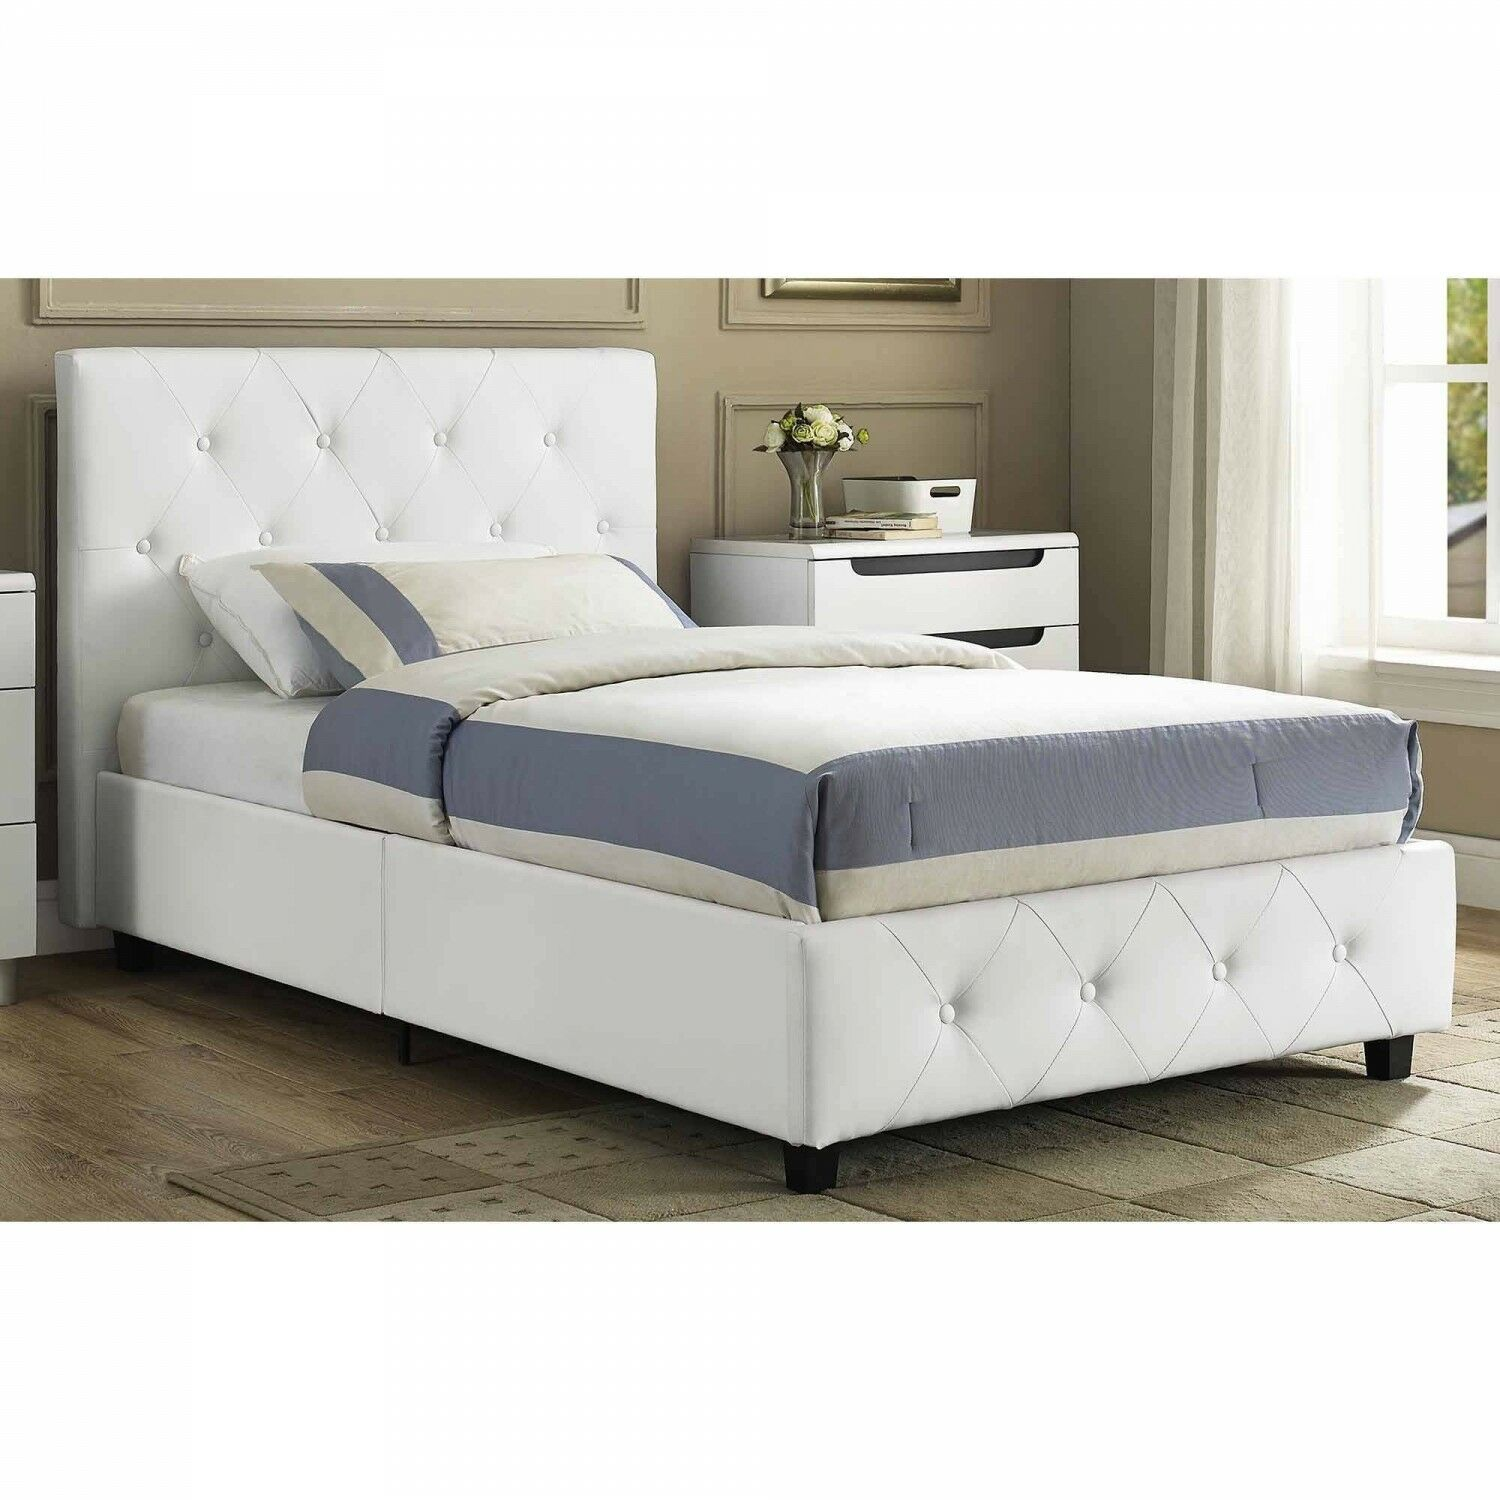 Headboard Upholstered Bed Faux Leather White Tufted Twin Full Queen Size Bedroom 1 Of 11free Shipping